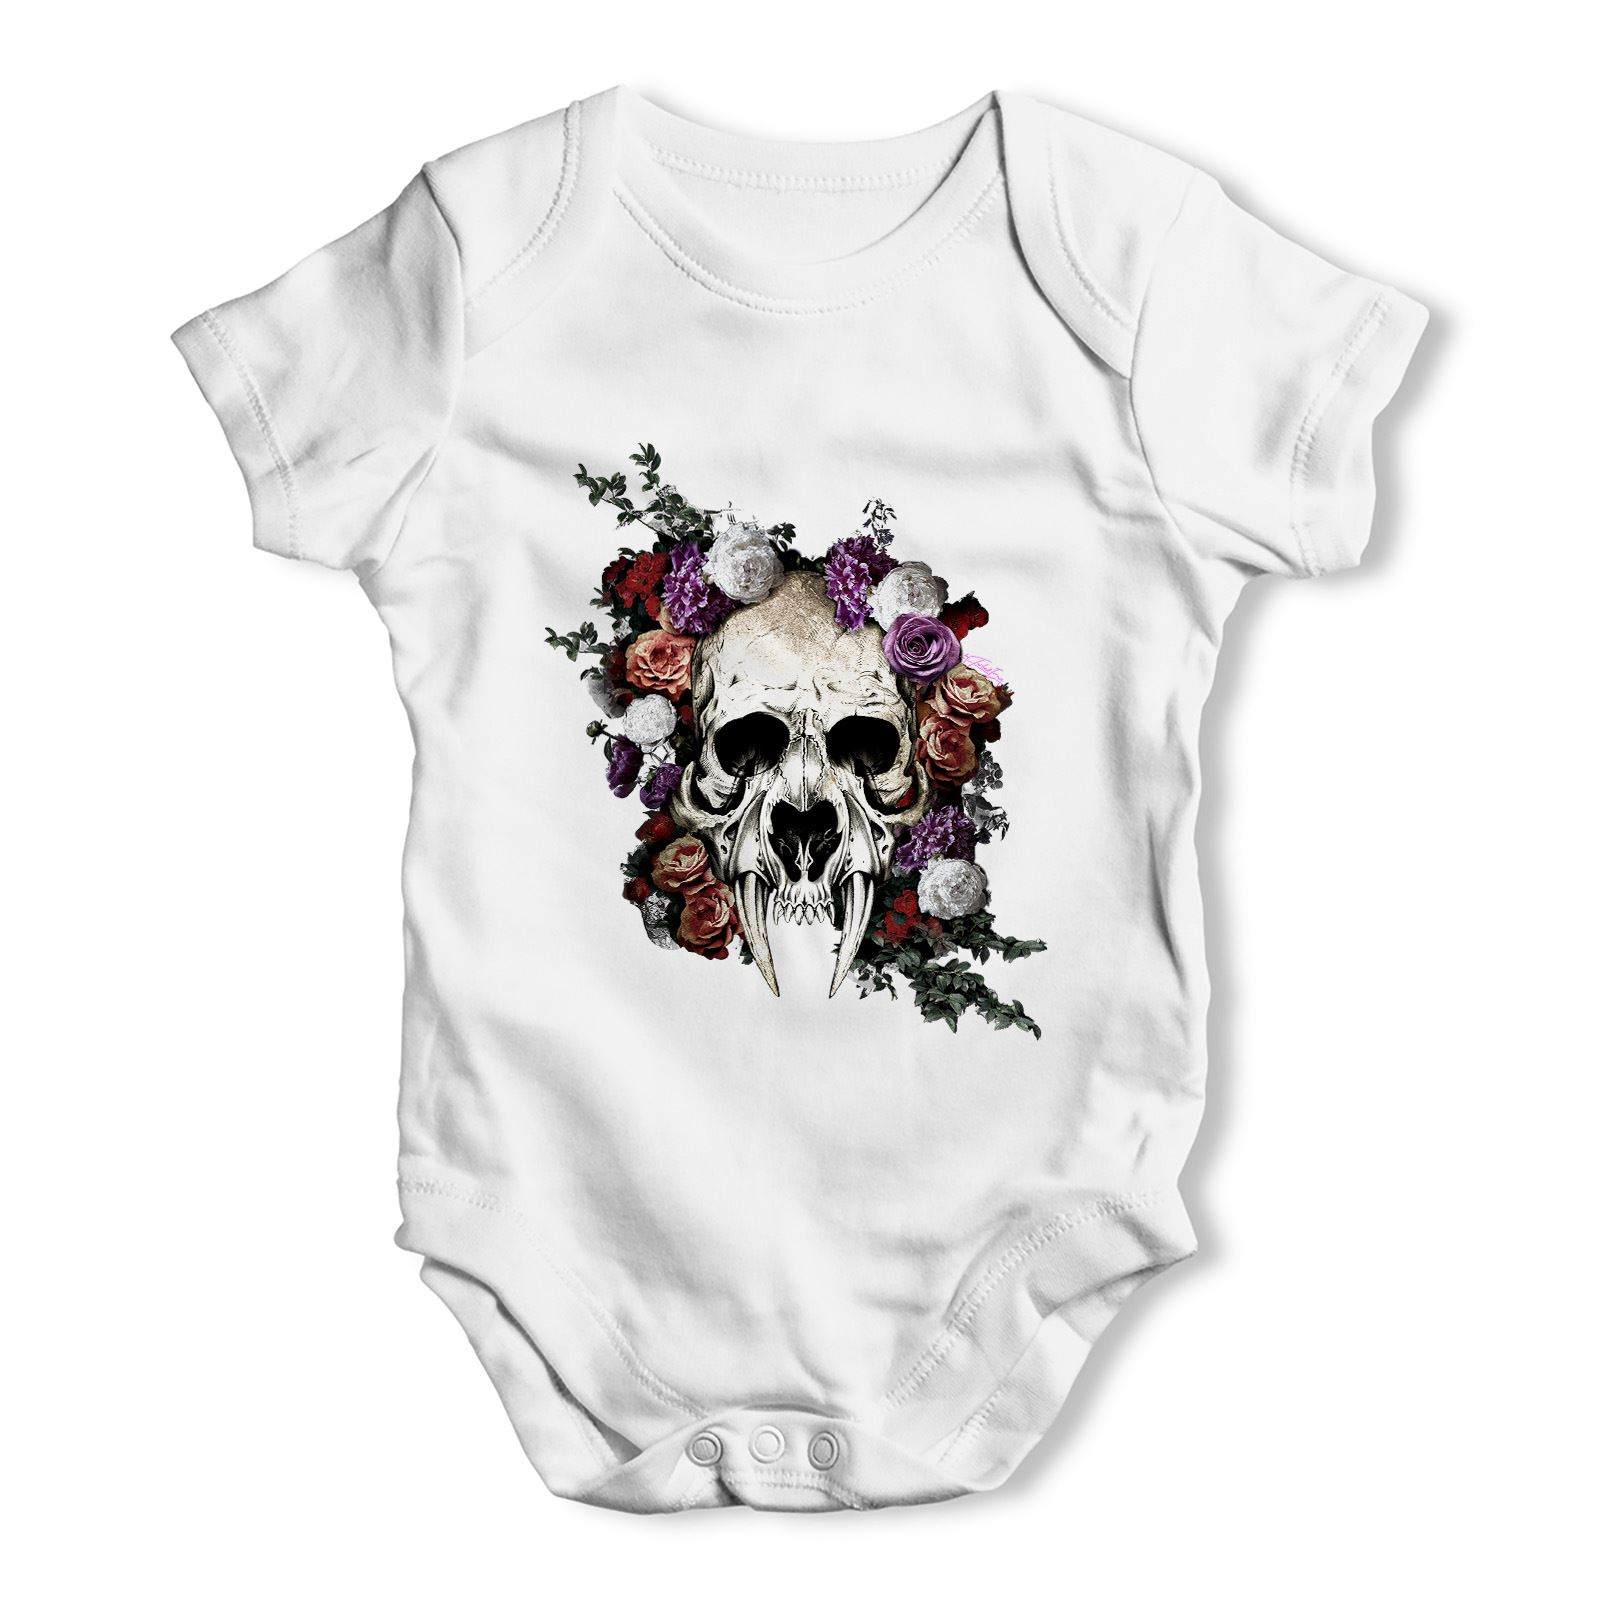 Twisted Envy Illuminati Skull Man Baby Toddler Funny ALL-OVER PRINT Baby T-shirt